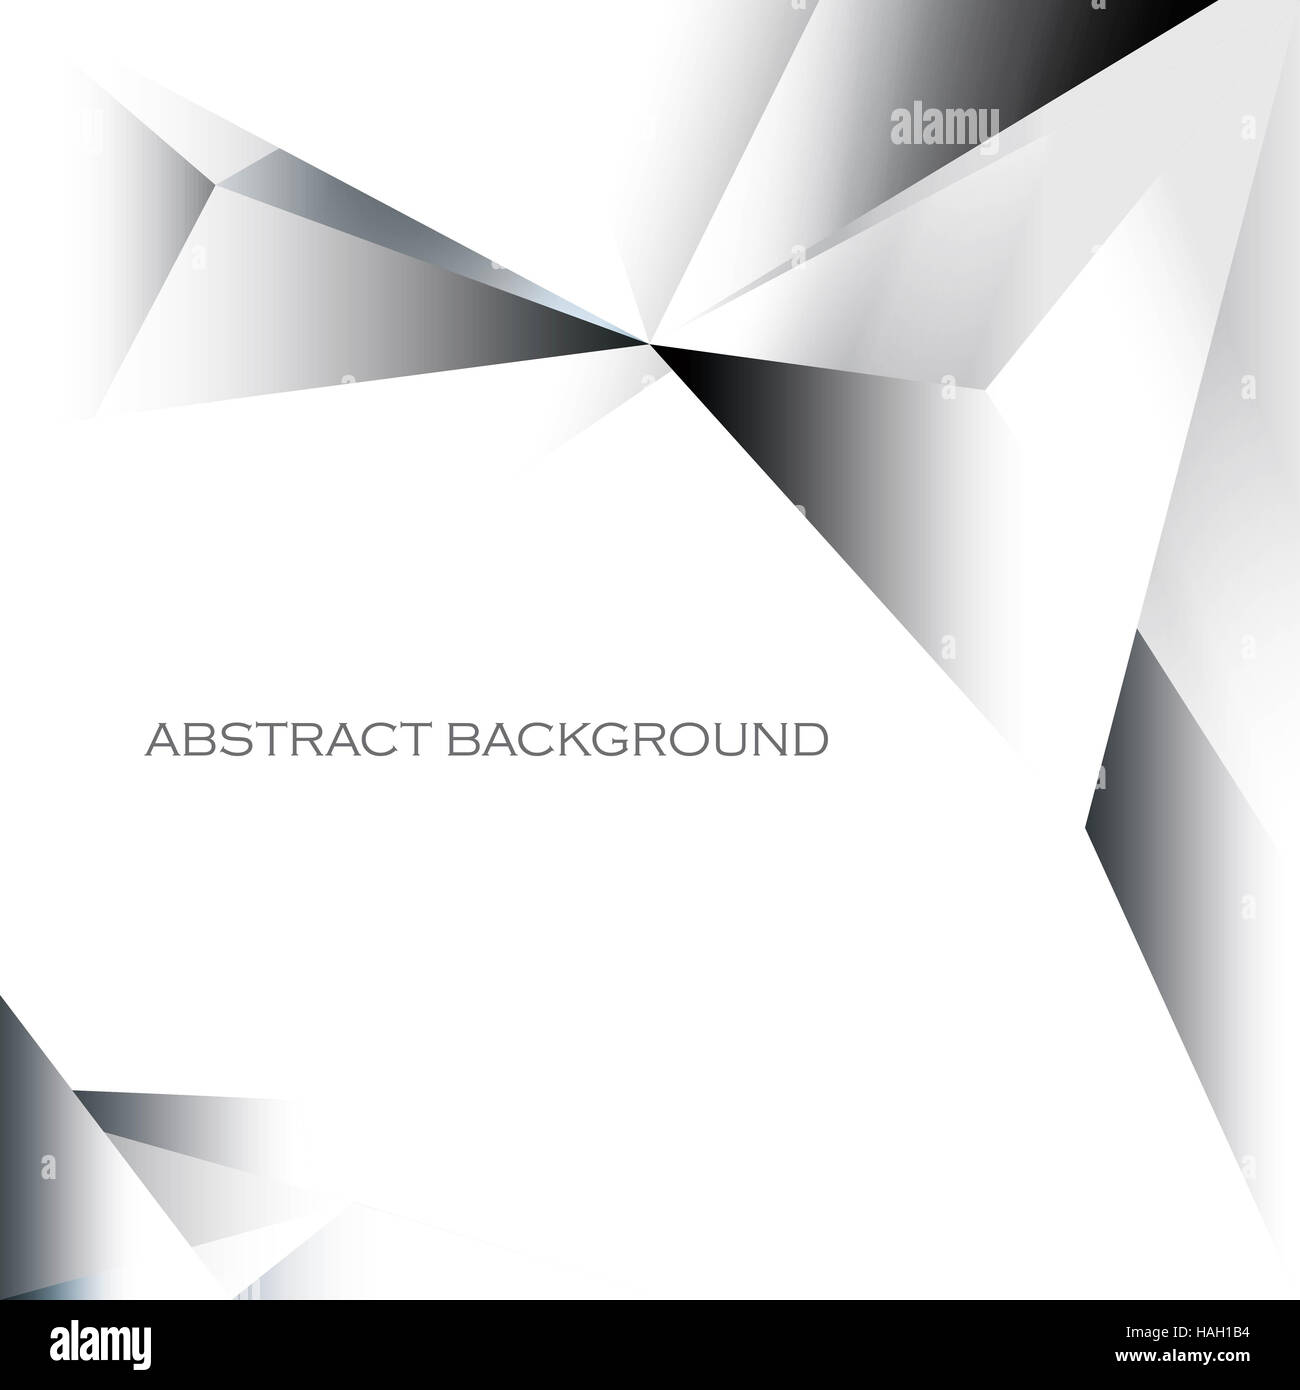 Abstract simplistic gradient geometrical background in grayscale - Stock Image